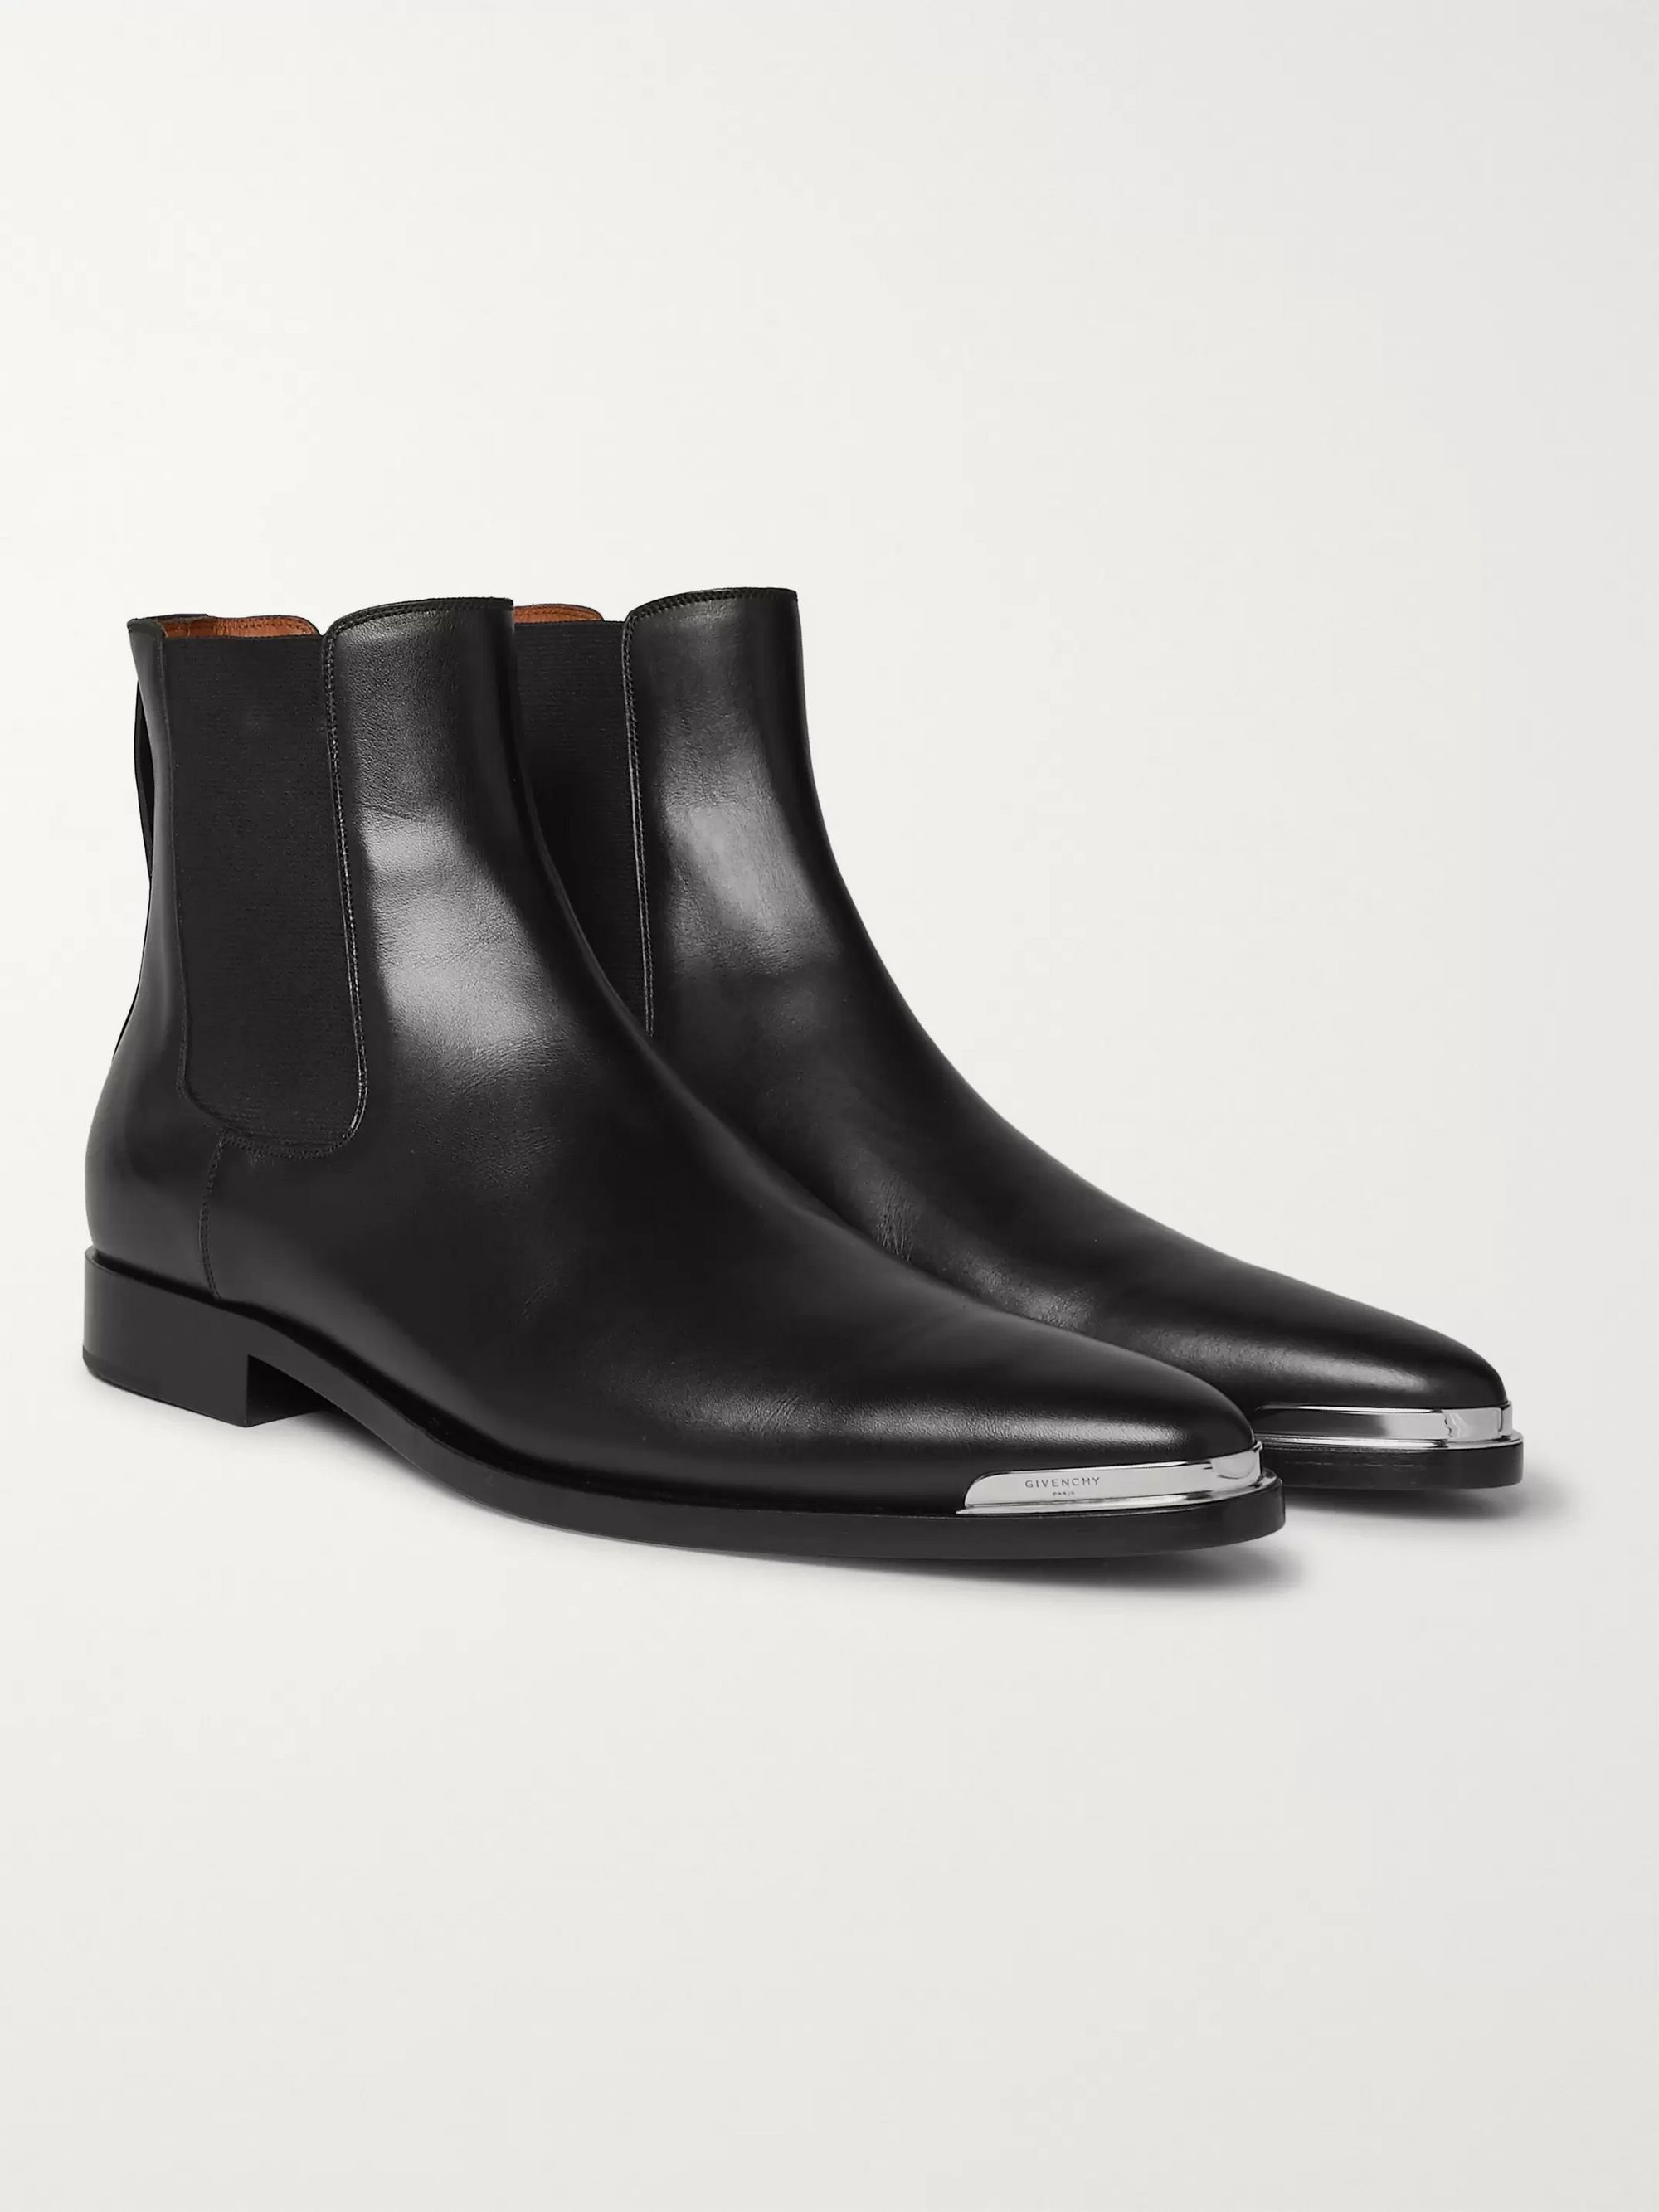 Dallas Leather Chelsea Boots by Givenchy